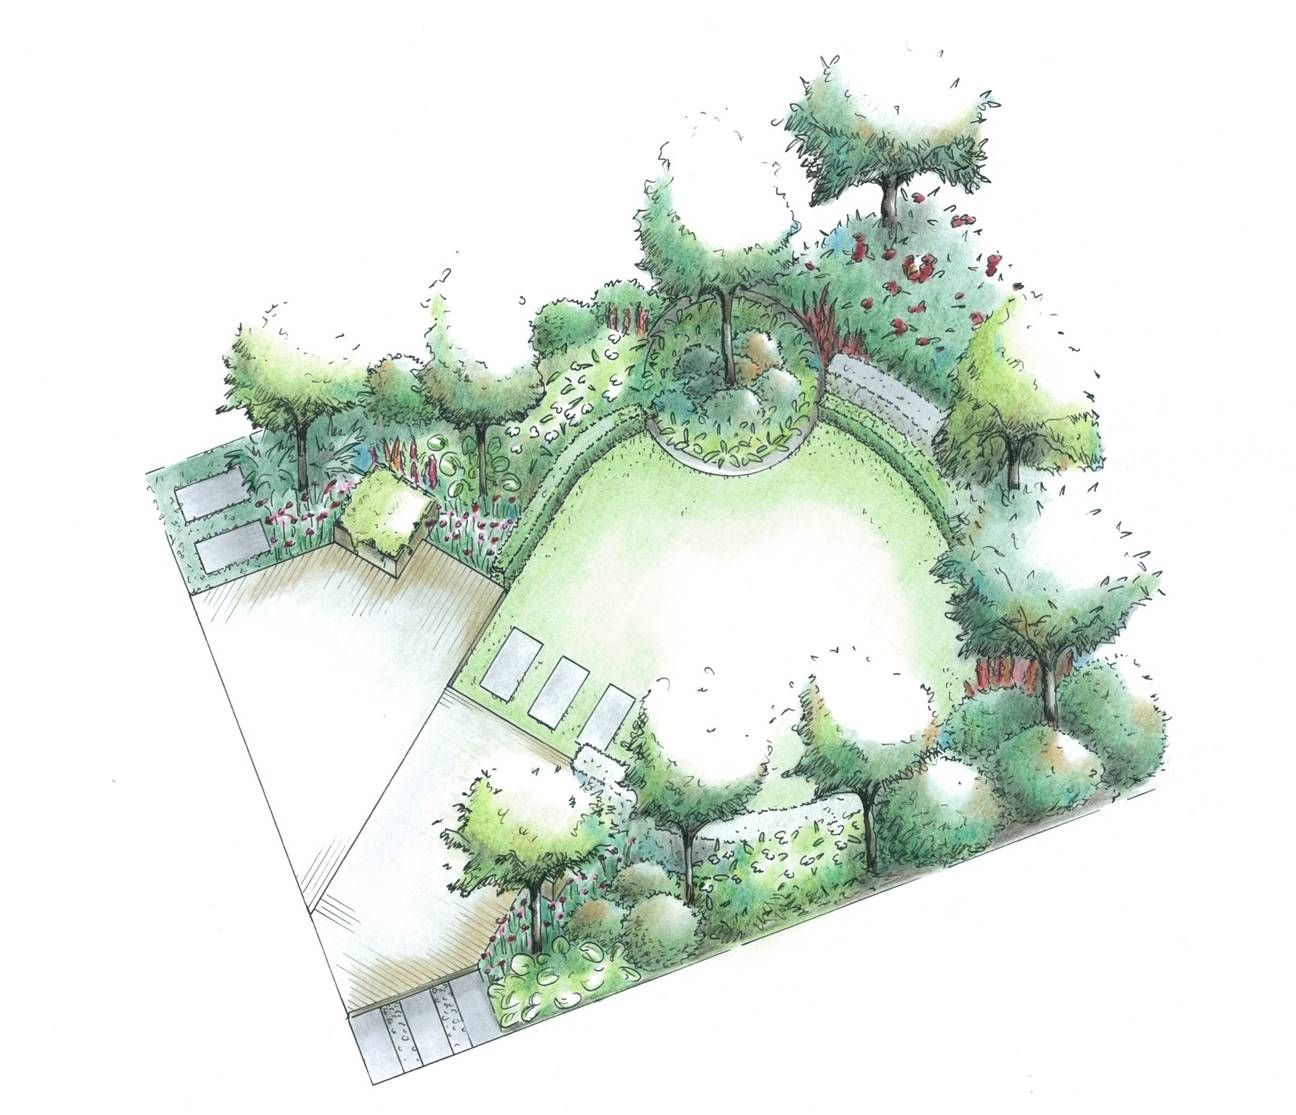 garden plan diagonal theme combined with circles 3d landscape planslandscape designgarden - Garden Design Layouts